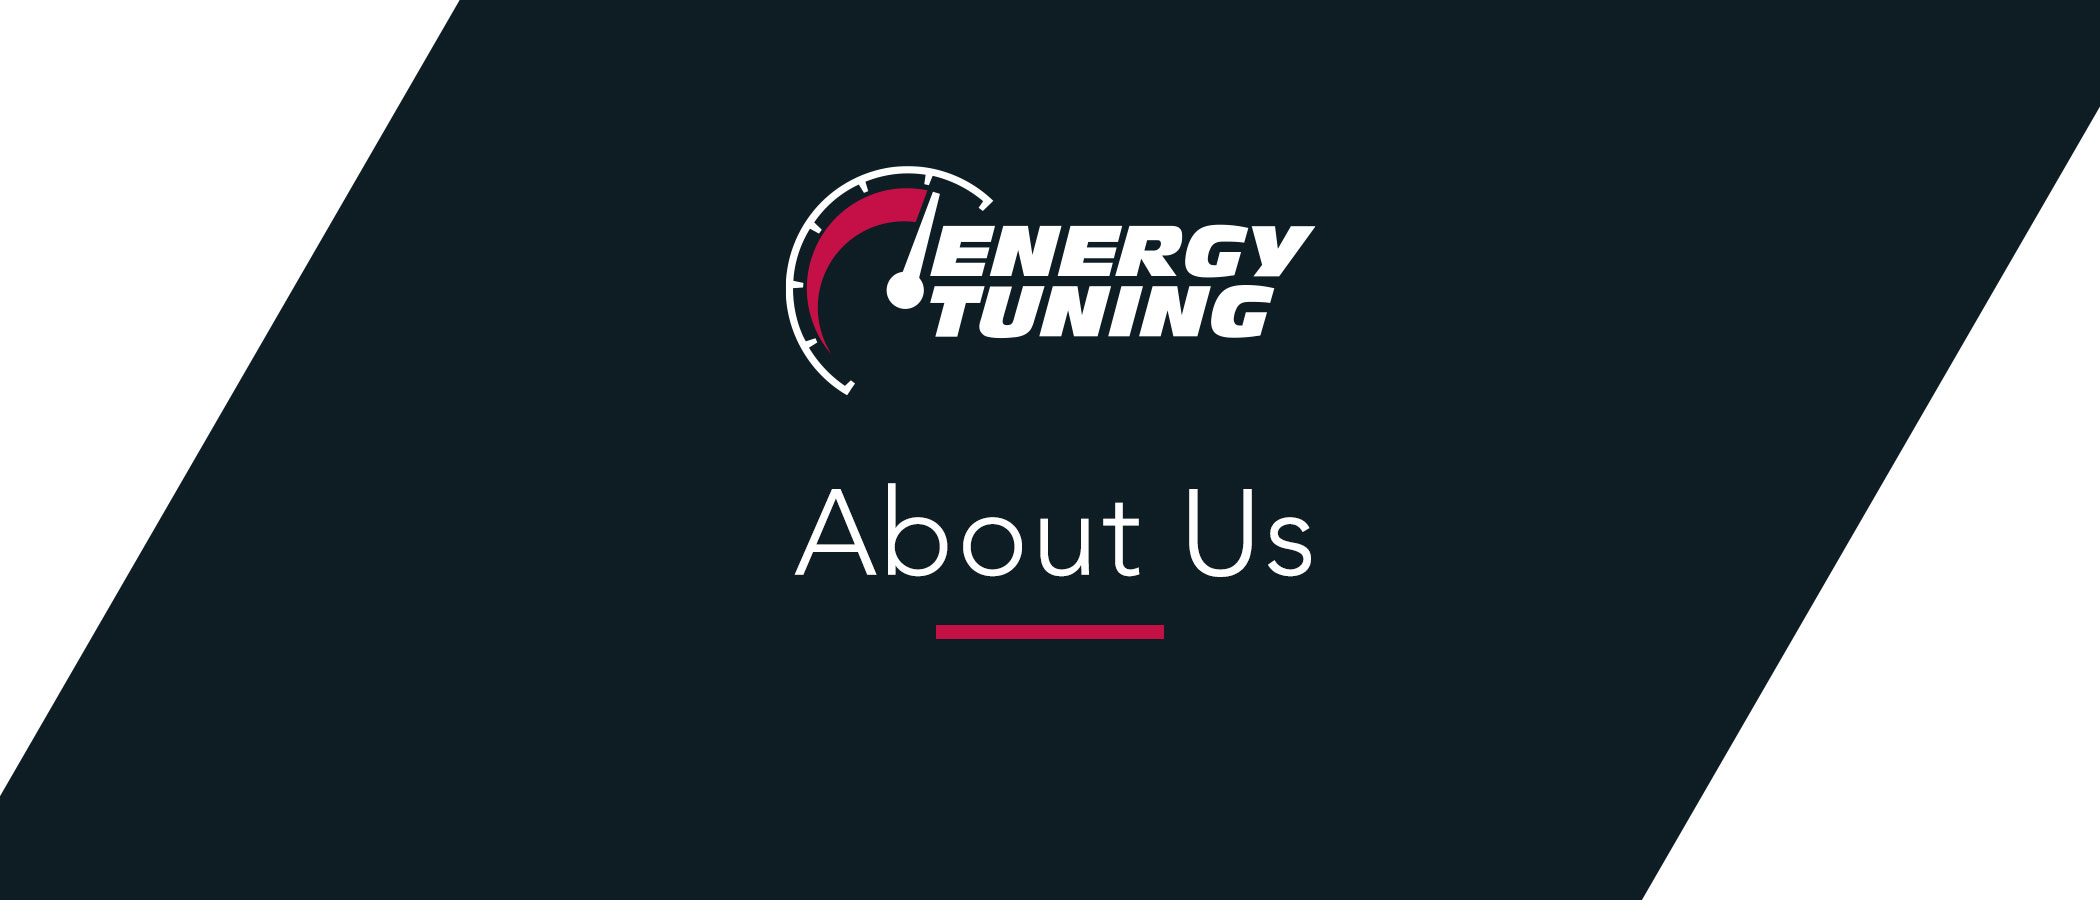 About Us - Energy Tuning